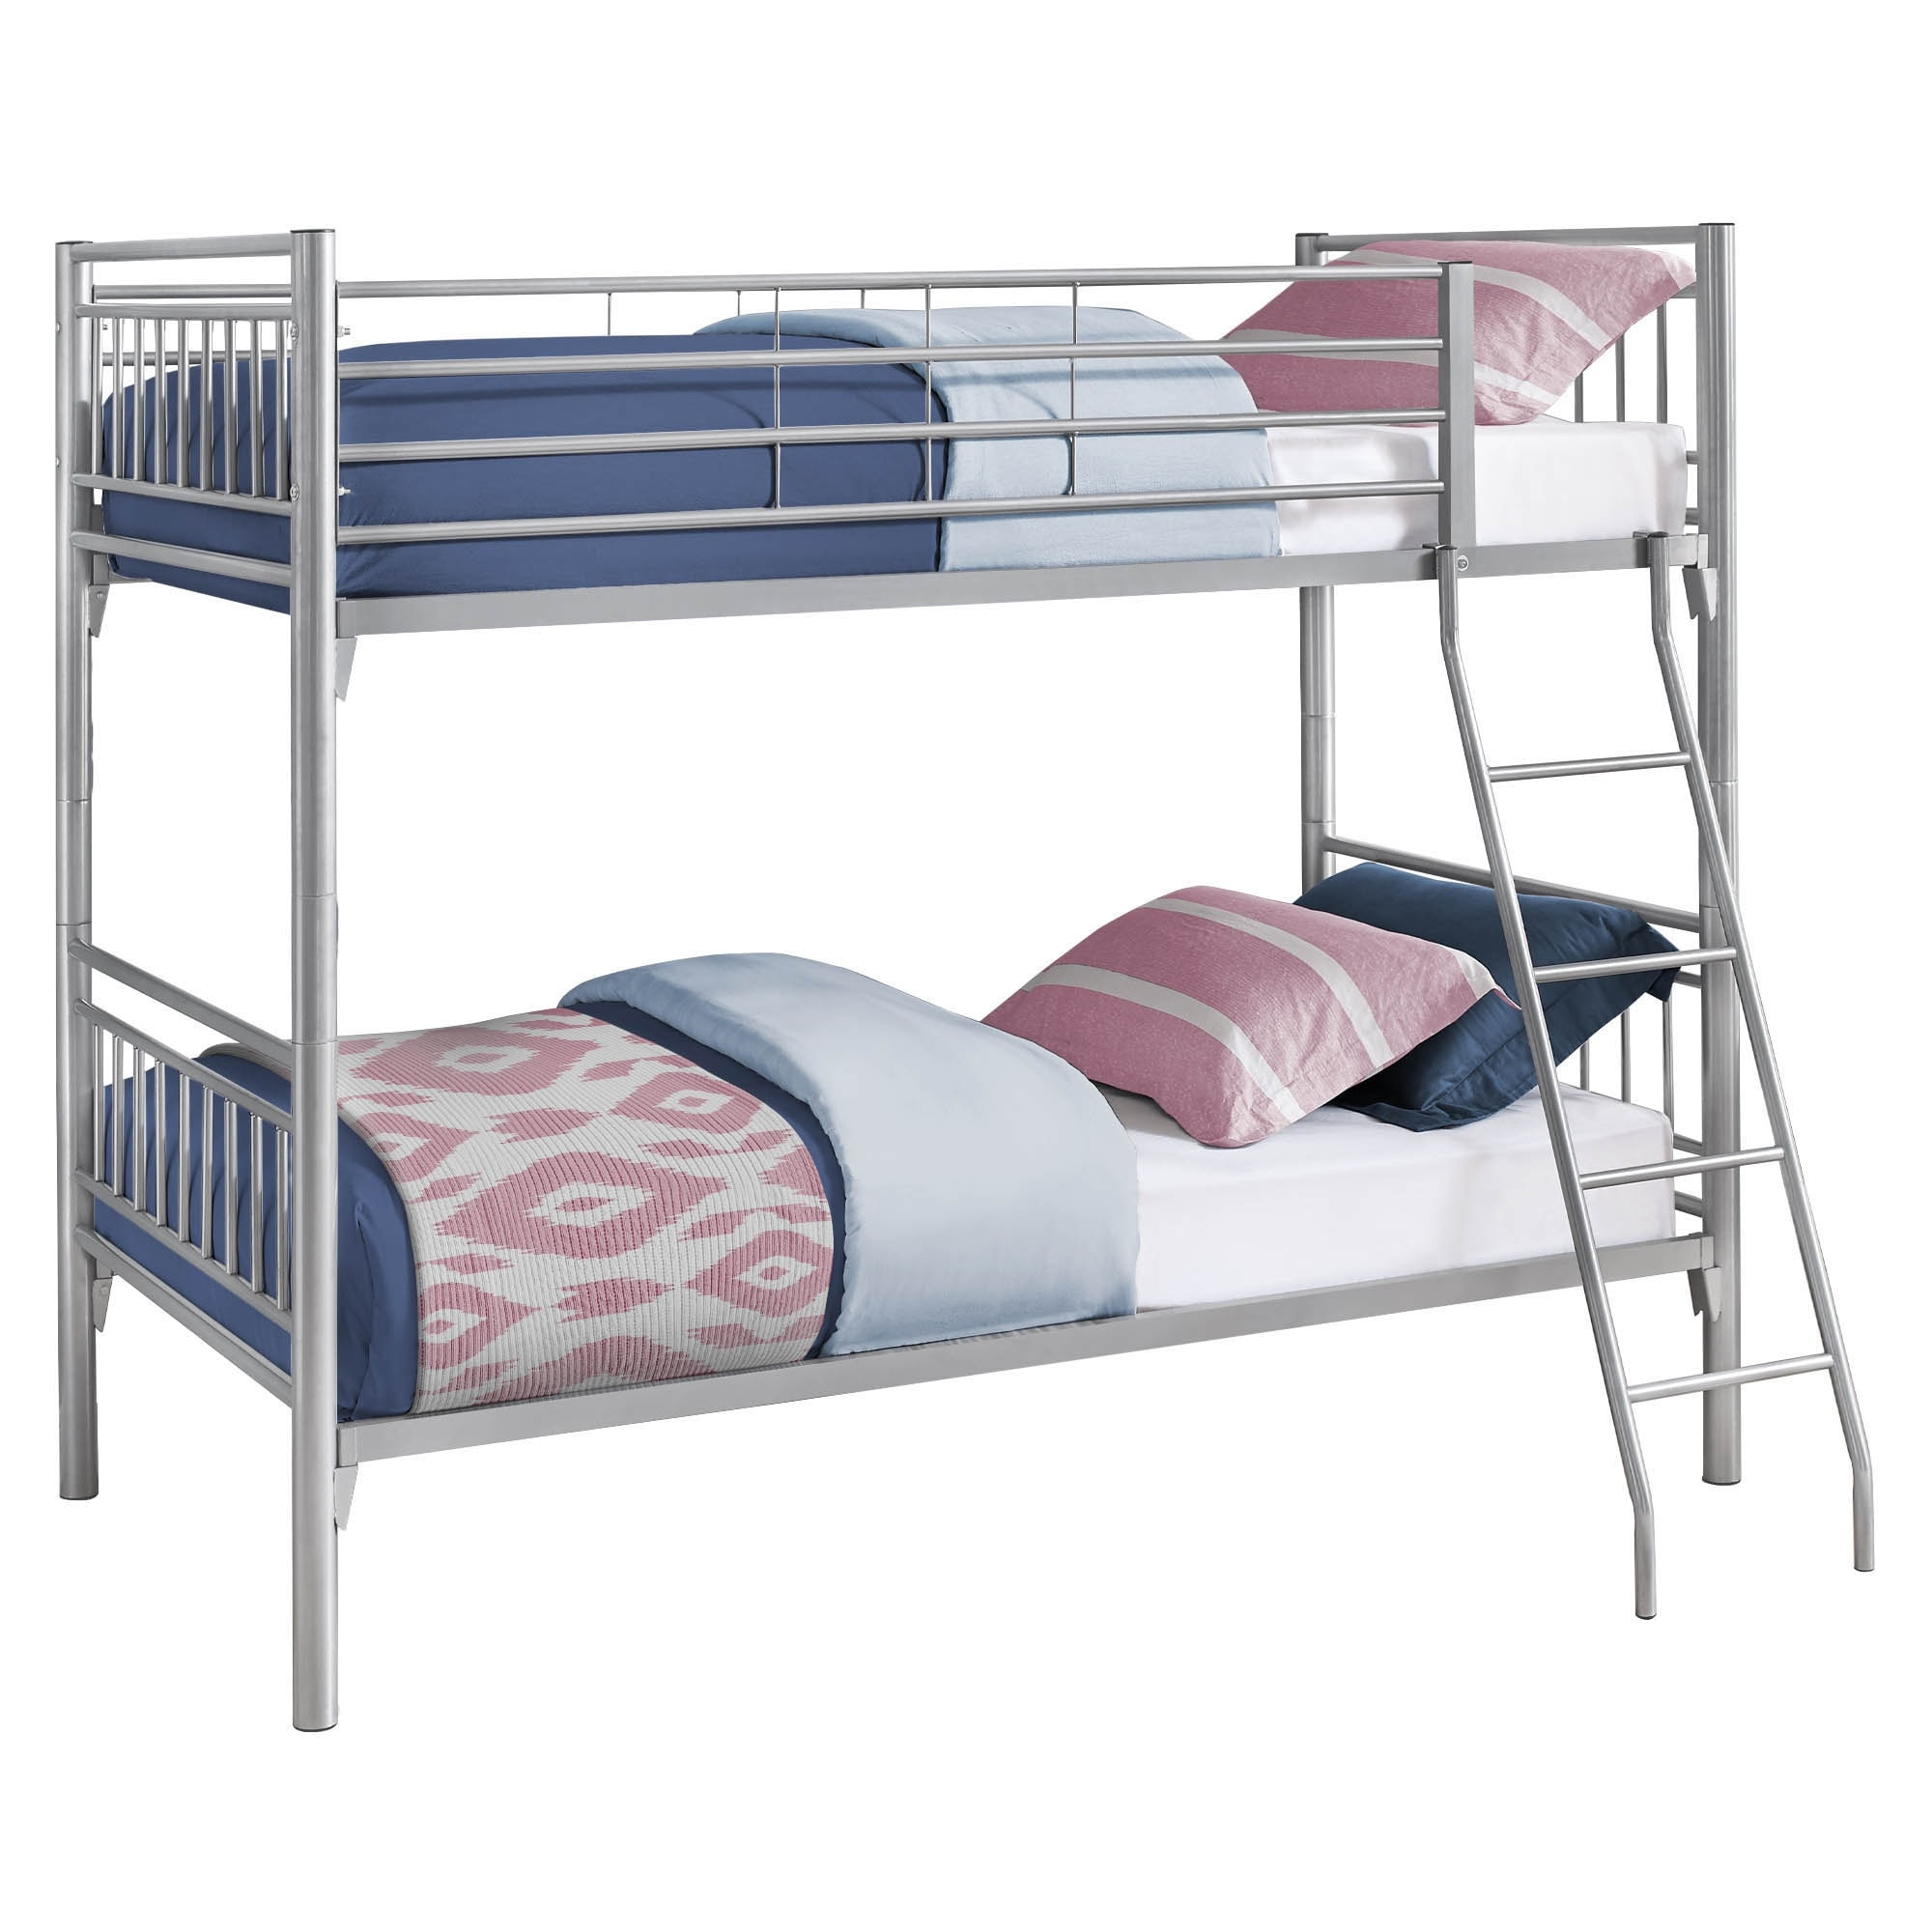 Offex Contemporary Bunk Bed Twin Twin Size Detachable Silver Metal On Sale Overstock 31484169